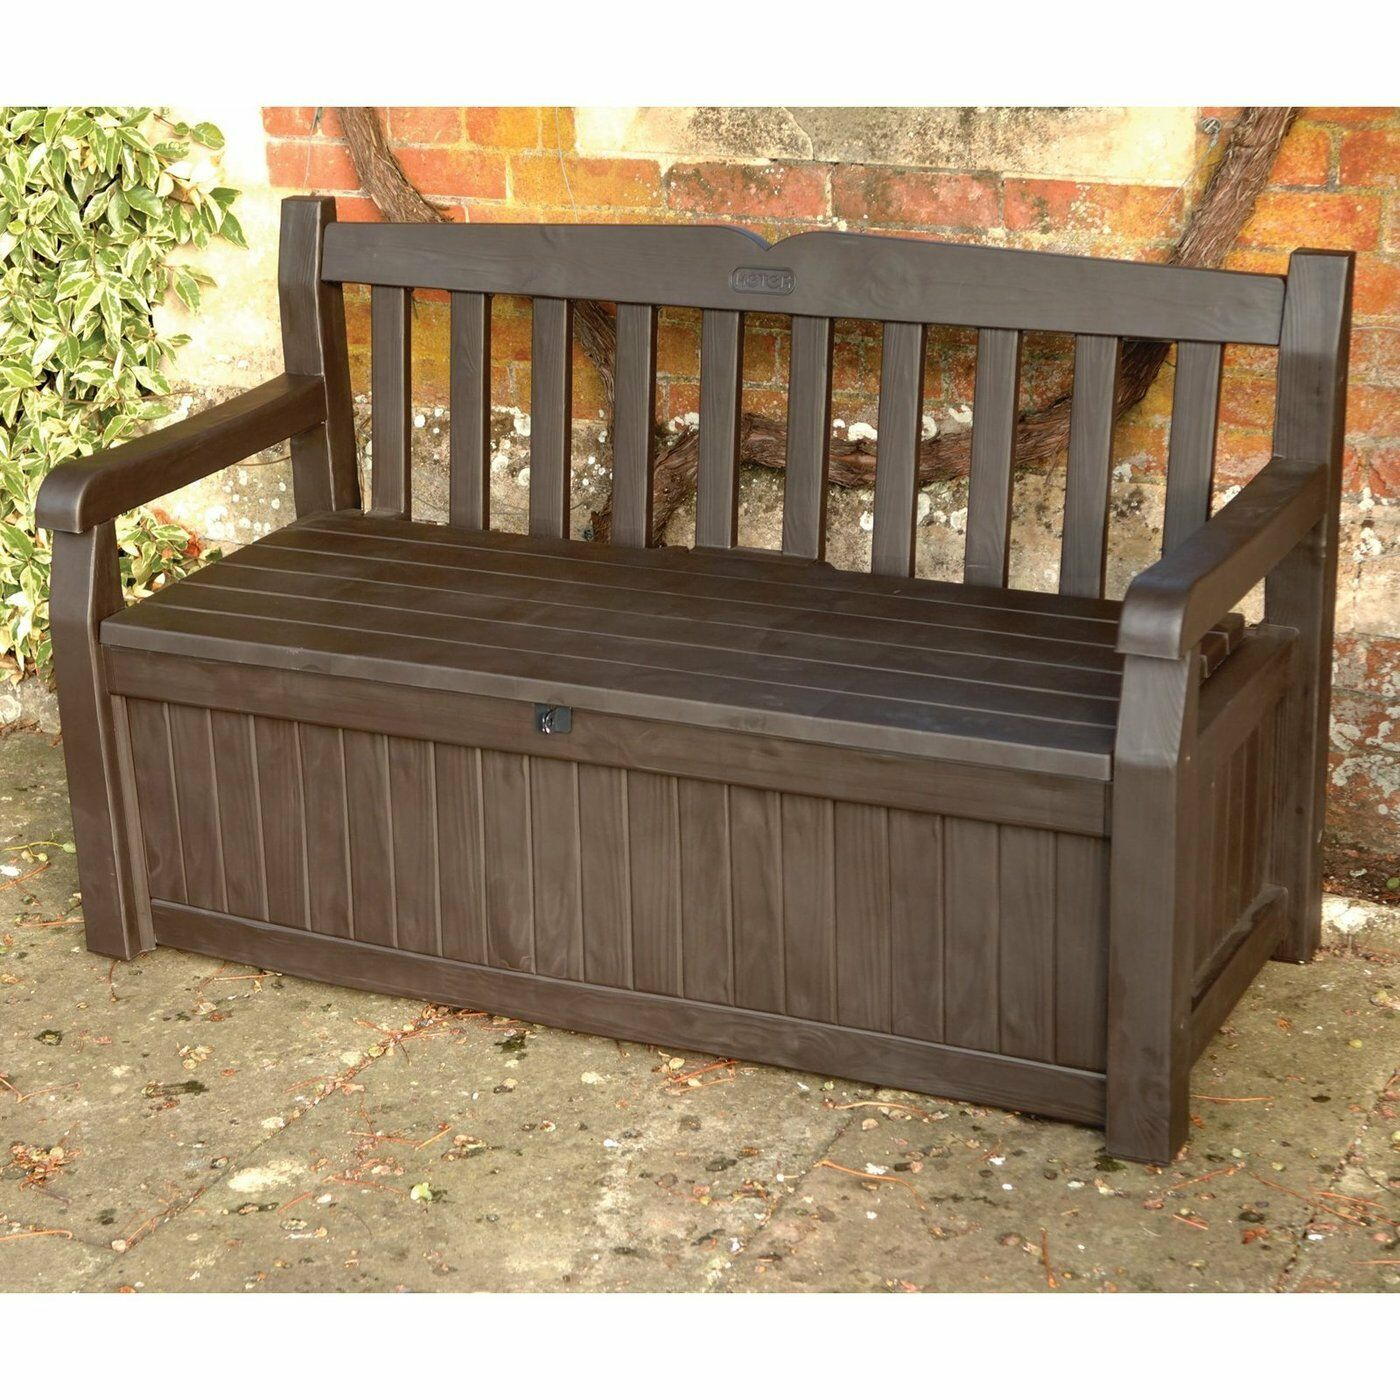 Outdoor Storage Bench Box Patio Deck Brown Pool Garden